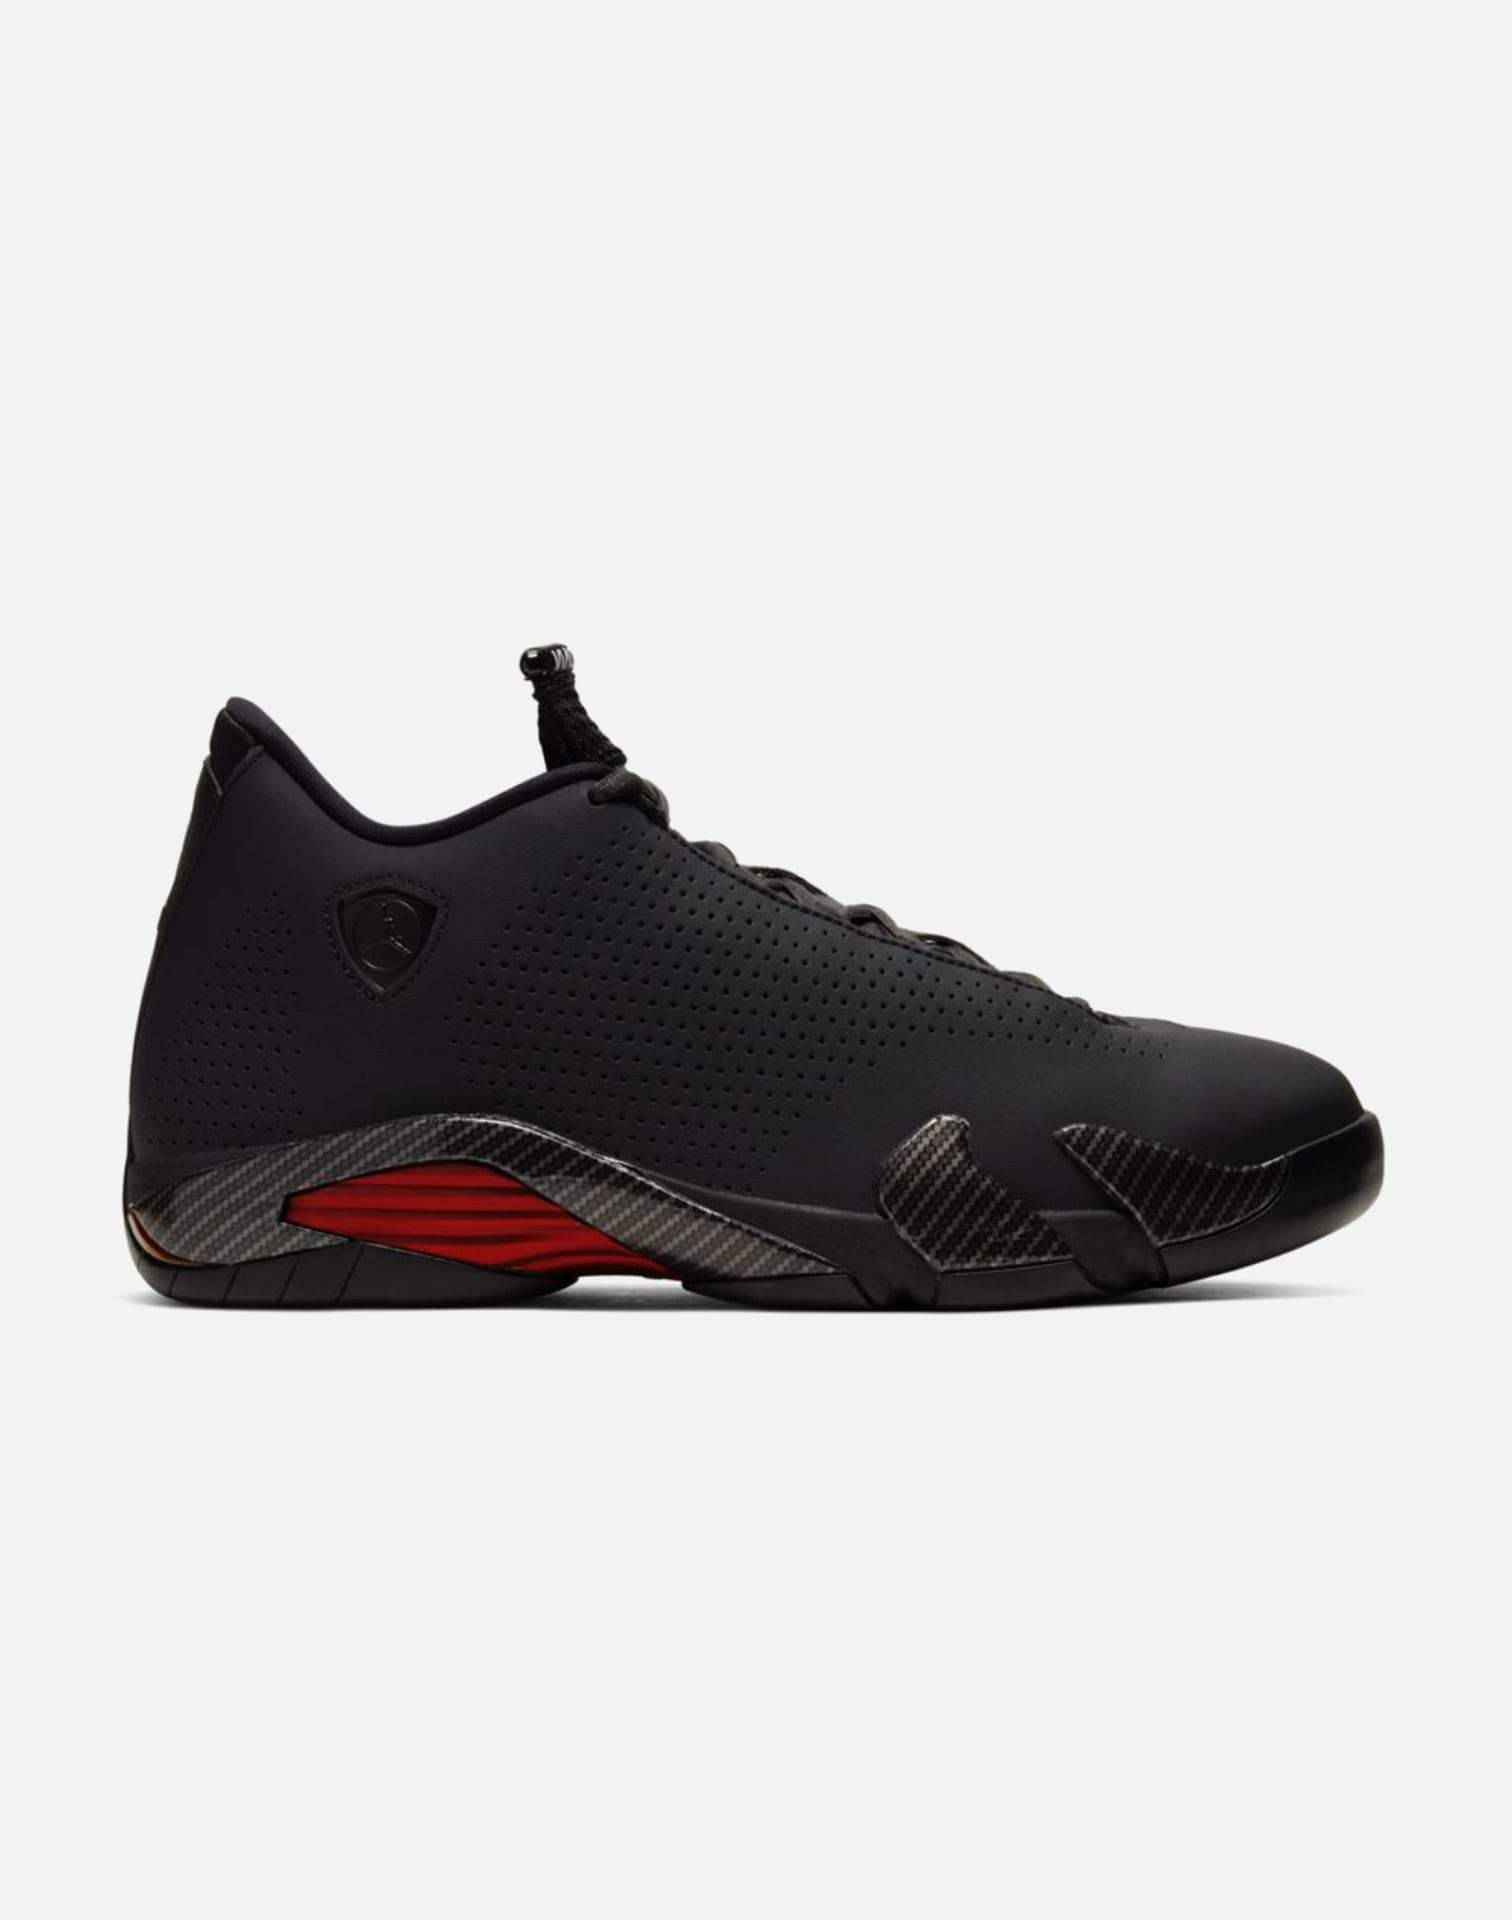 AIR JORDAN RETRO 14 SE 'BLACK FERRARI'